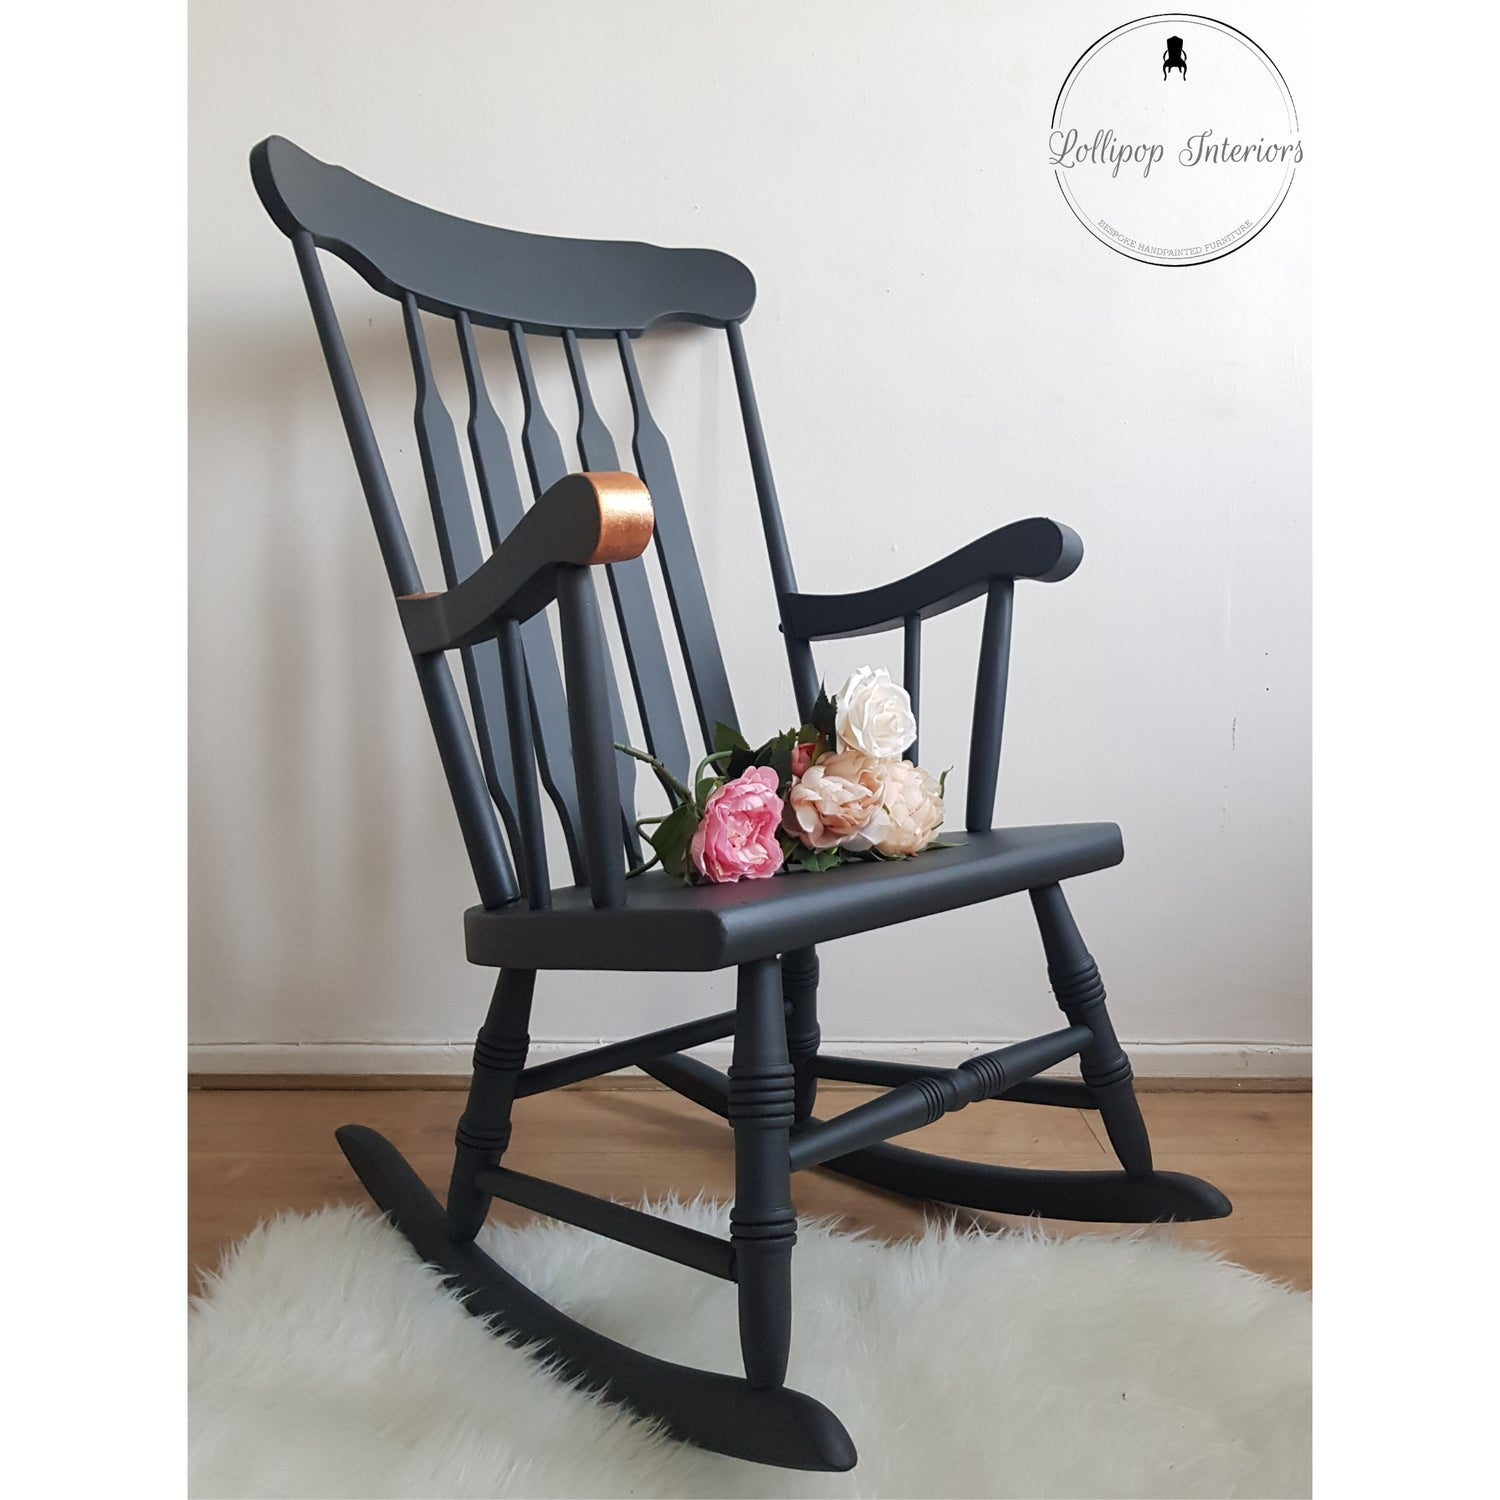 Image of Dark grey and copper leaf rocking chair